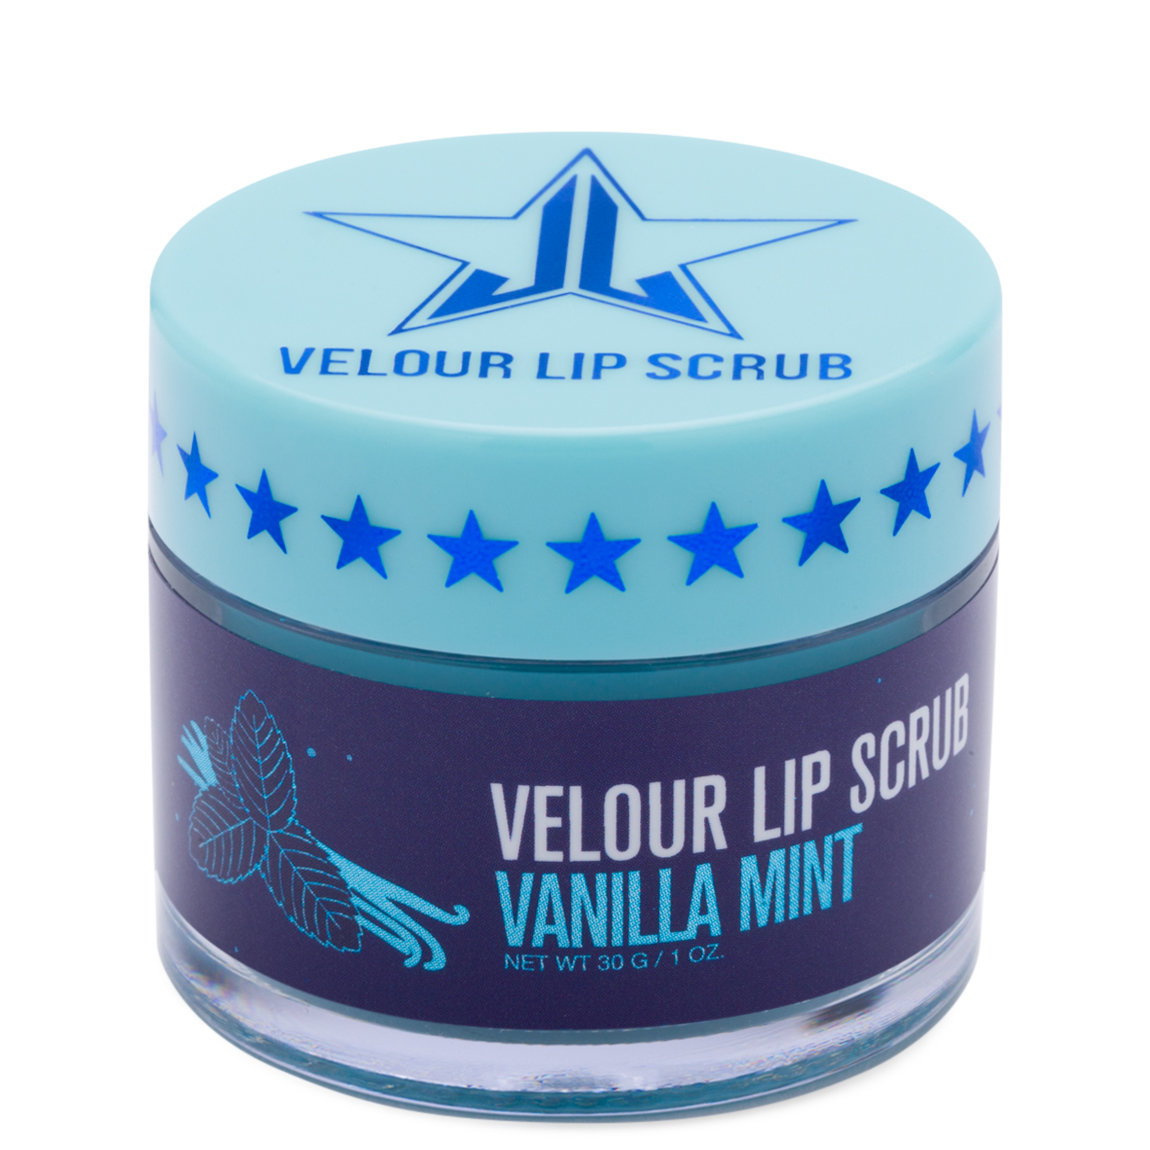 Jeffree Star Cosmetics Velour Lip Scrub Vanilla Mint